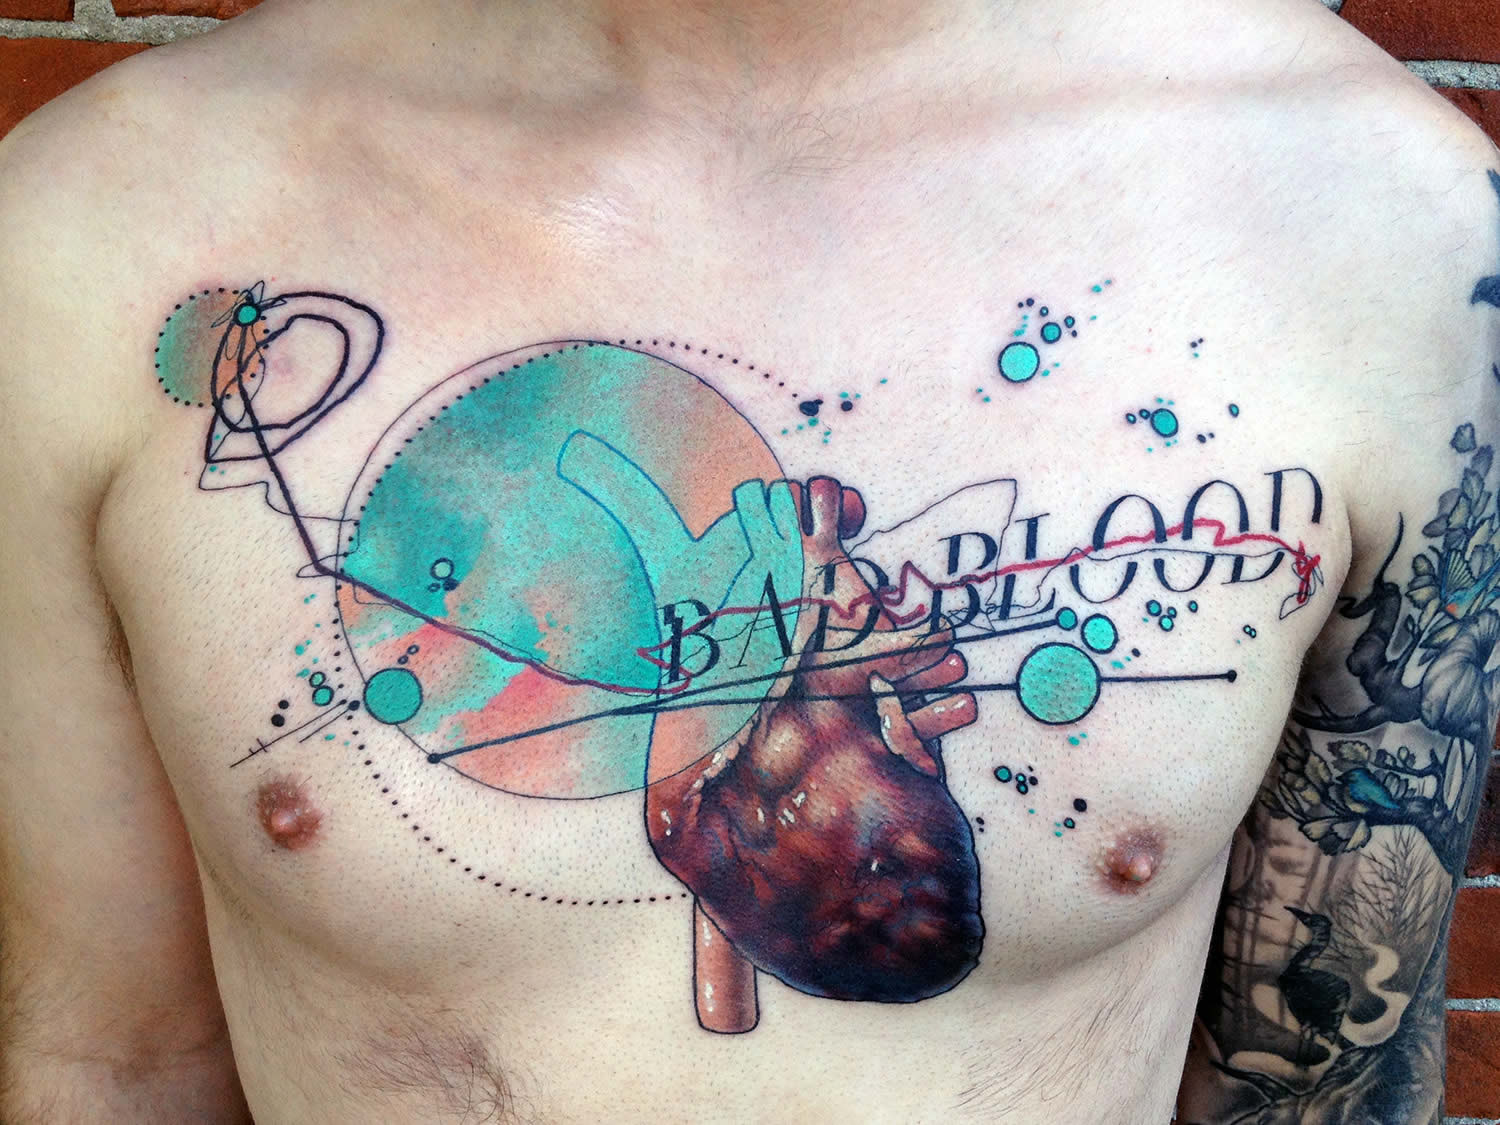 bad blood, heart tattoo on chest by cody eich